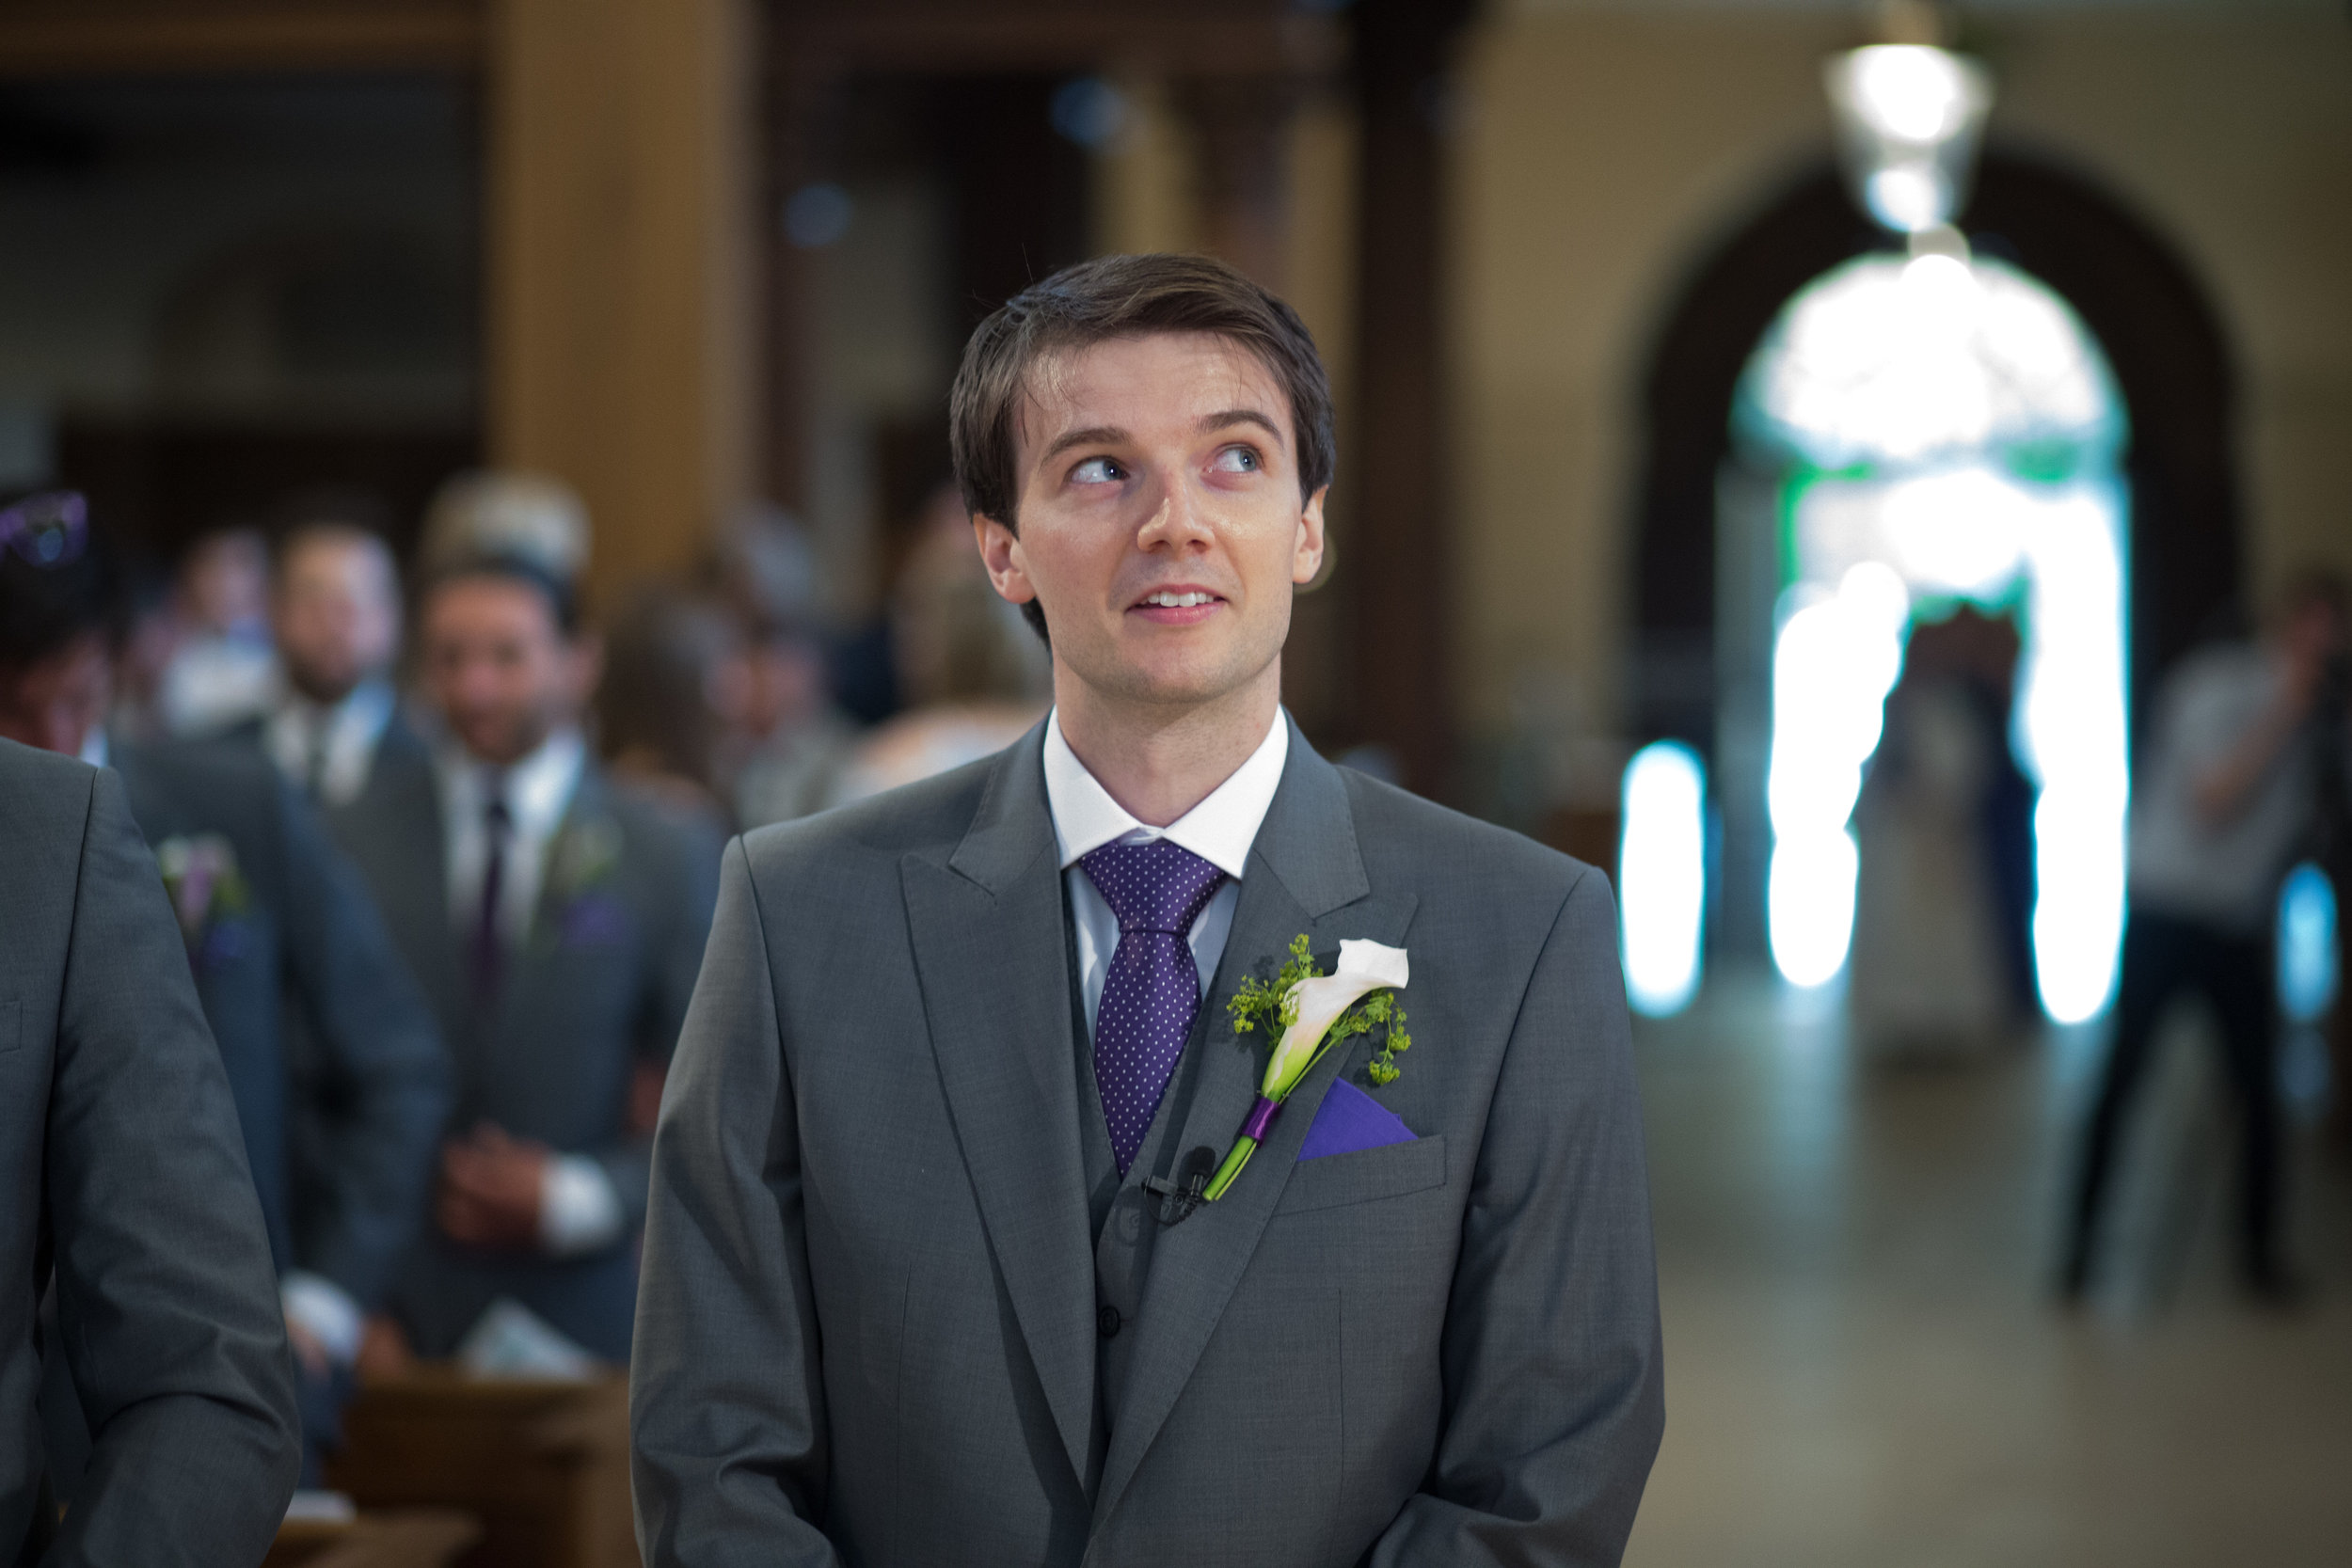 Saint-Alfege-Church-greenwich-london-wedding-groom-1